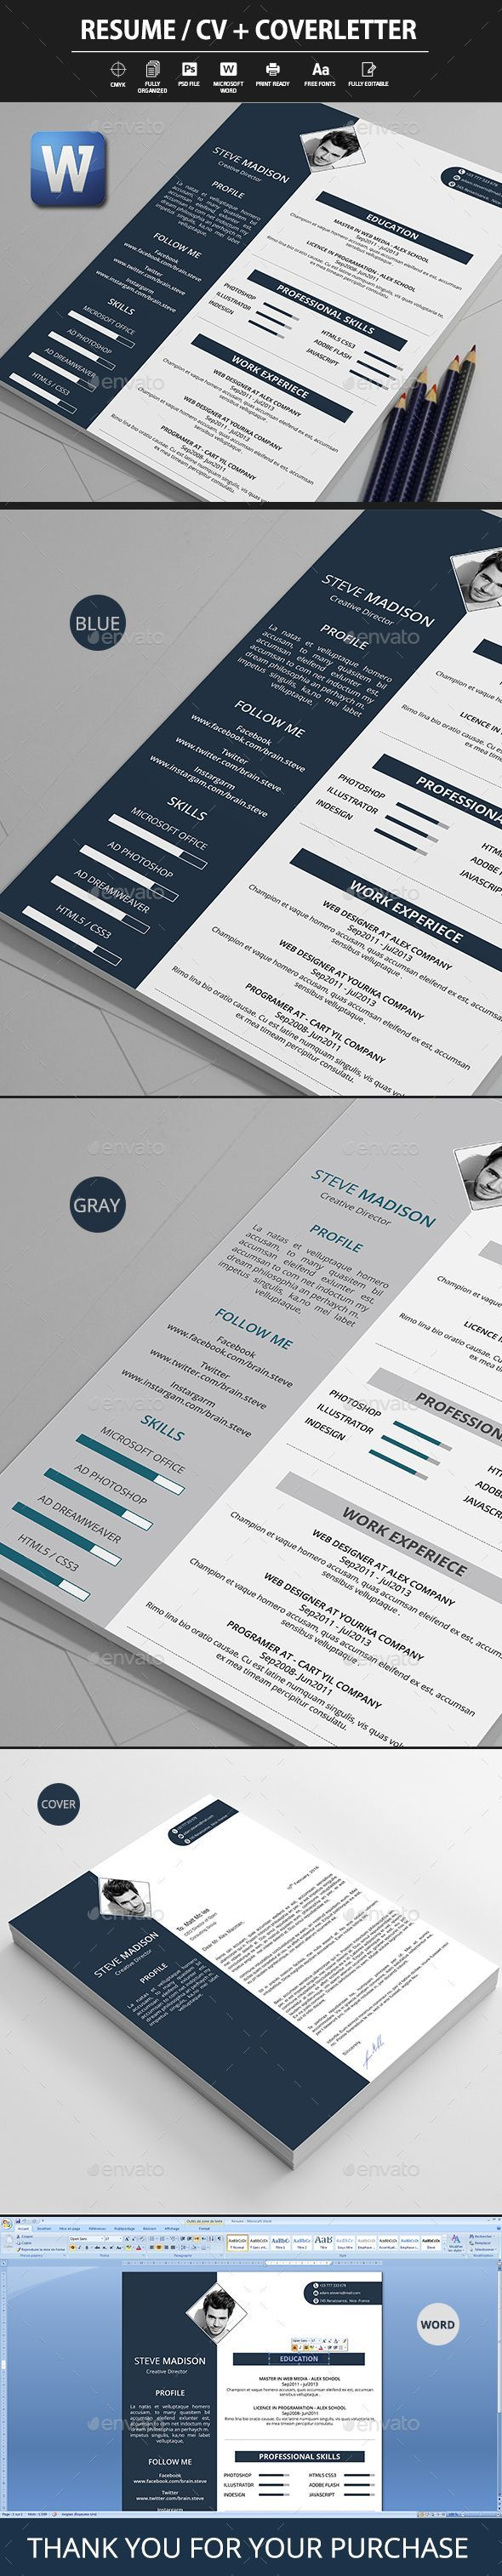 Resume / #CV + Coverletter #Template PSD. Download here ...